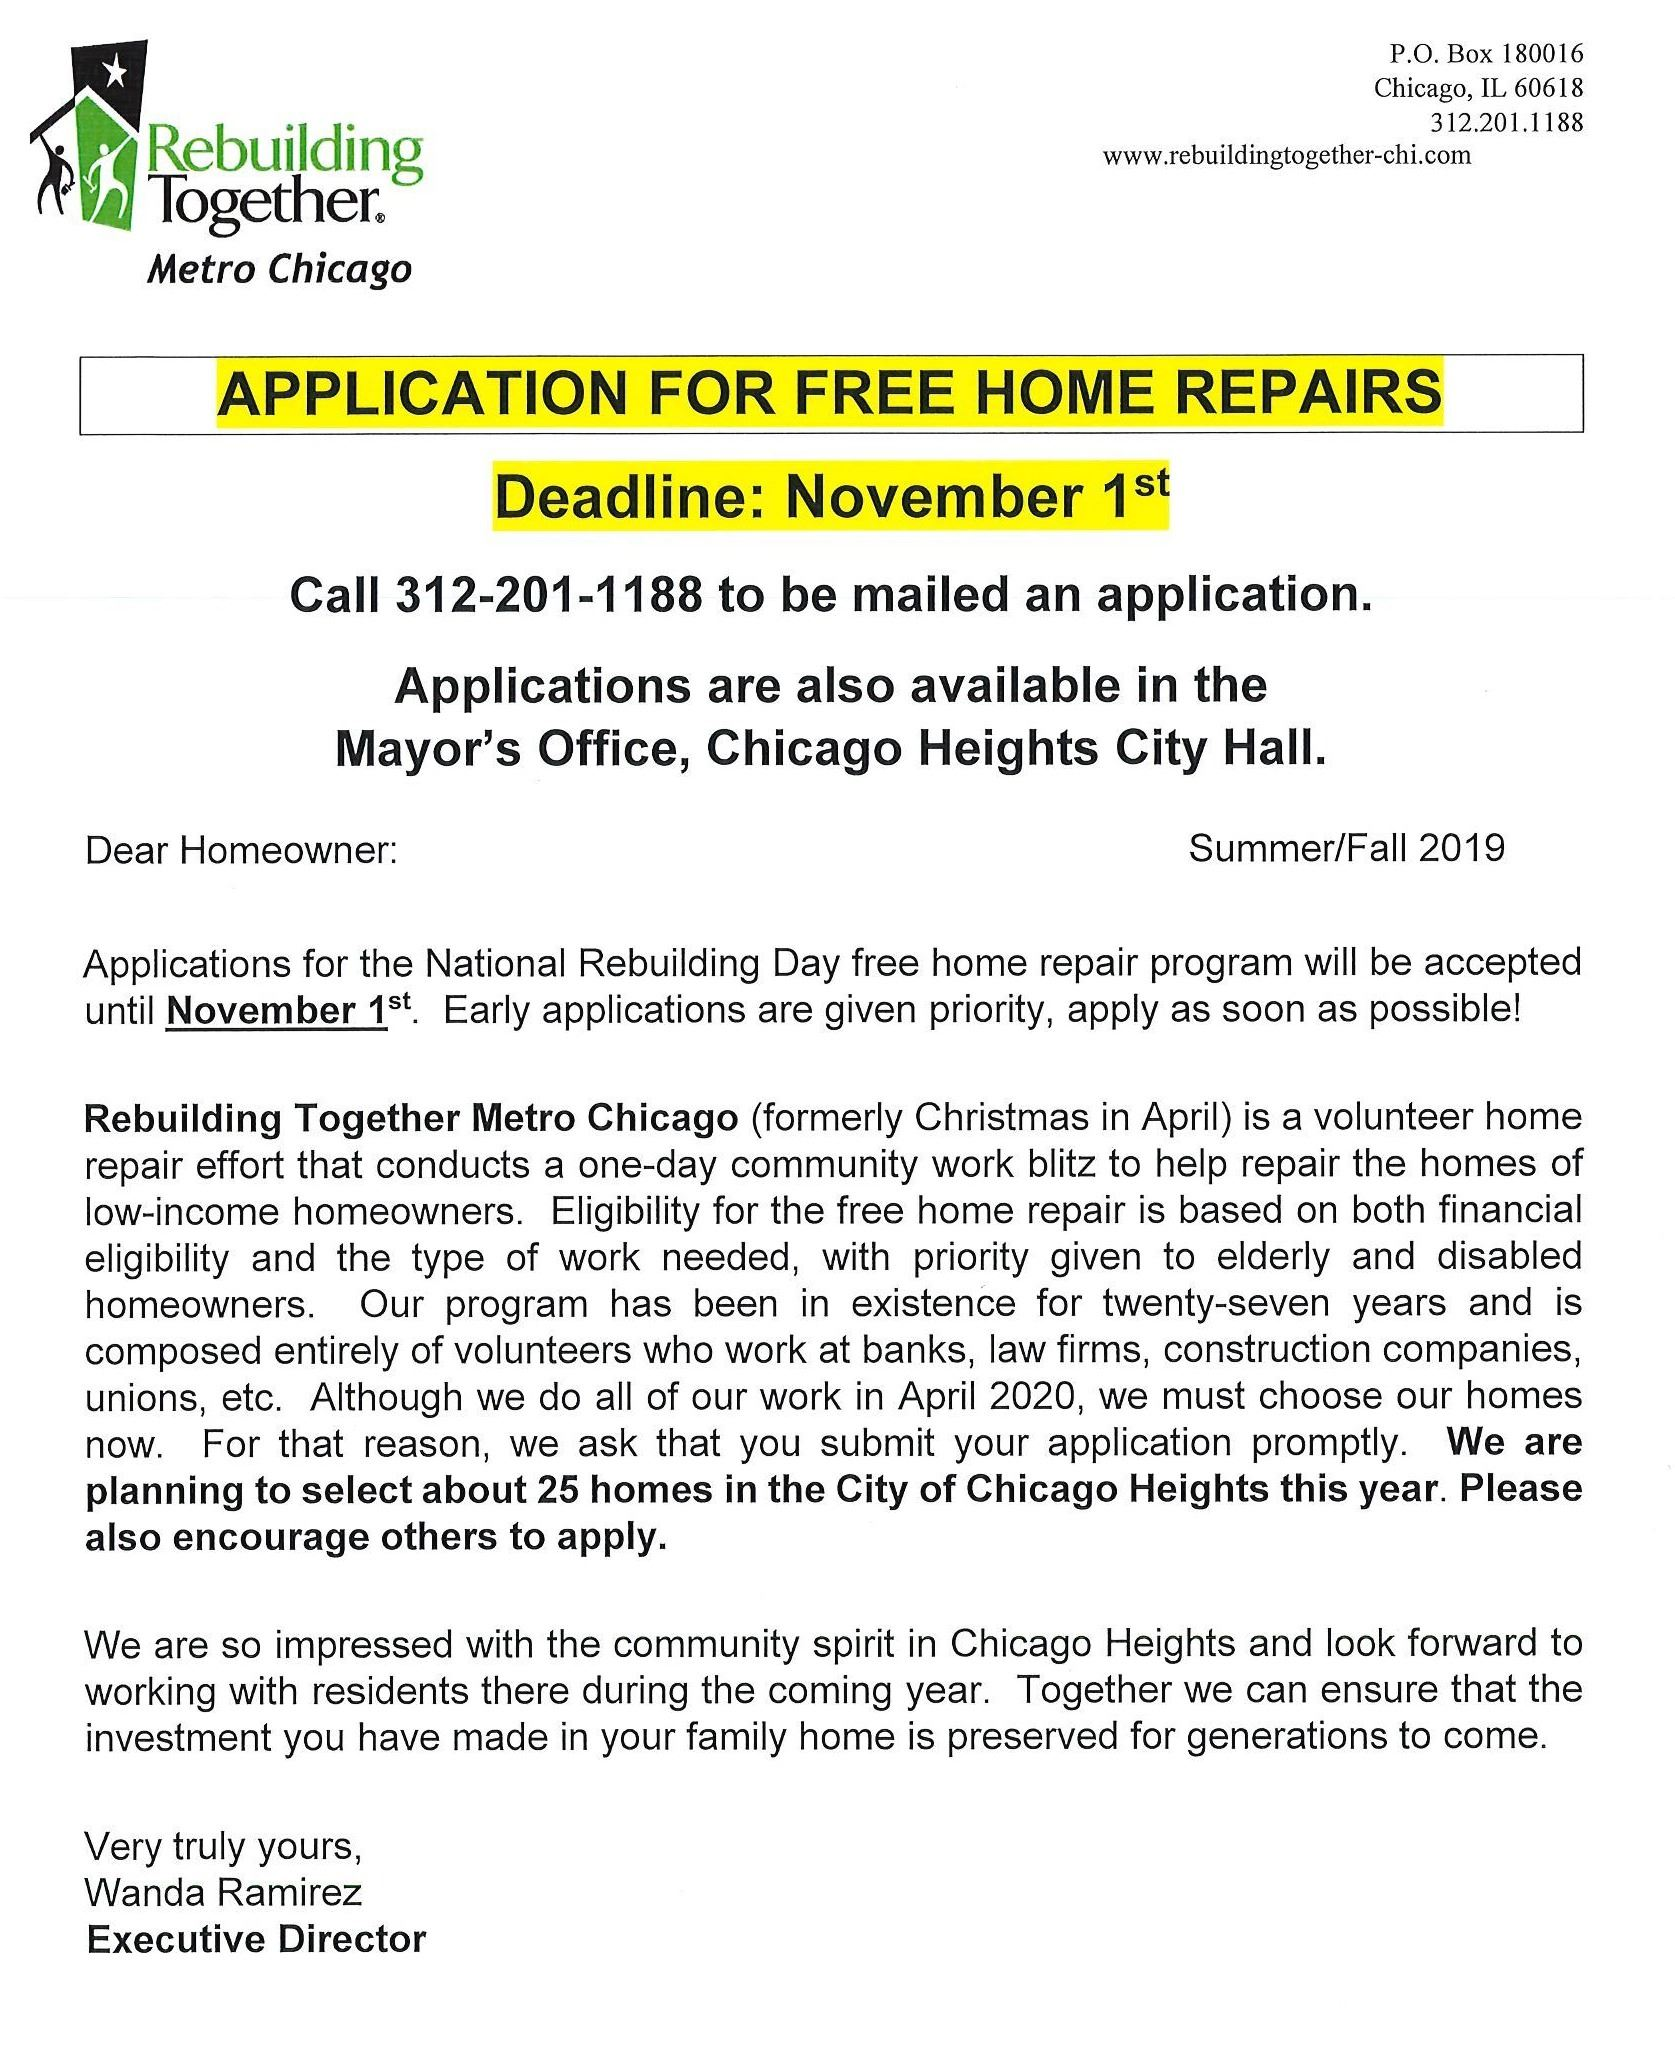 Flyer - Rebuilding Together Metro Chicago - Letter in English - Reminder to Apply